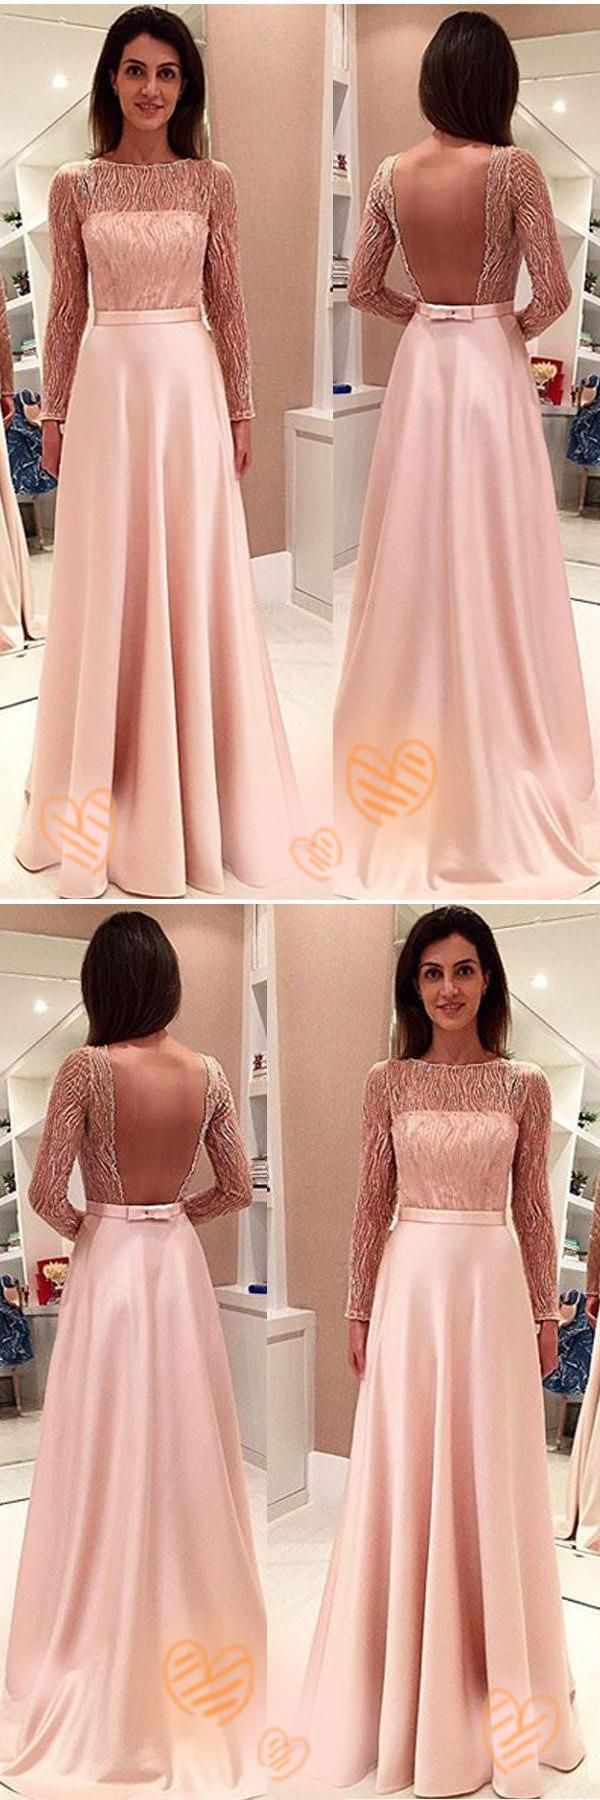 Pink prom dresses backless prom dresses cute prom dresses prom